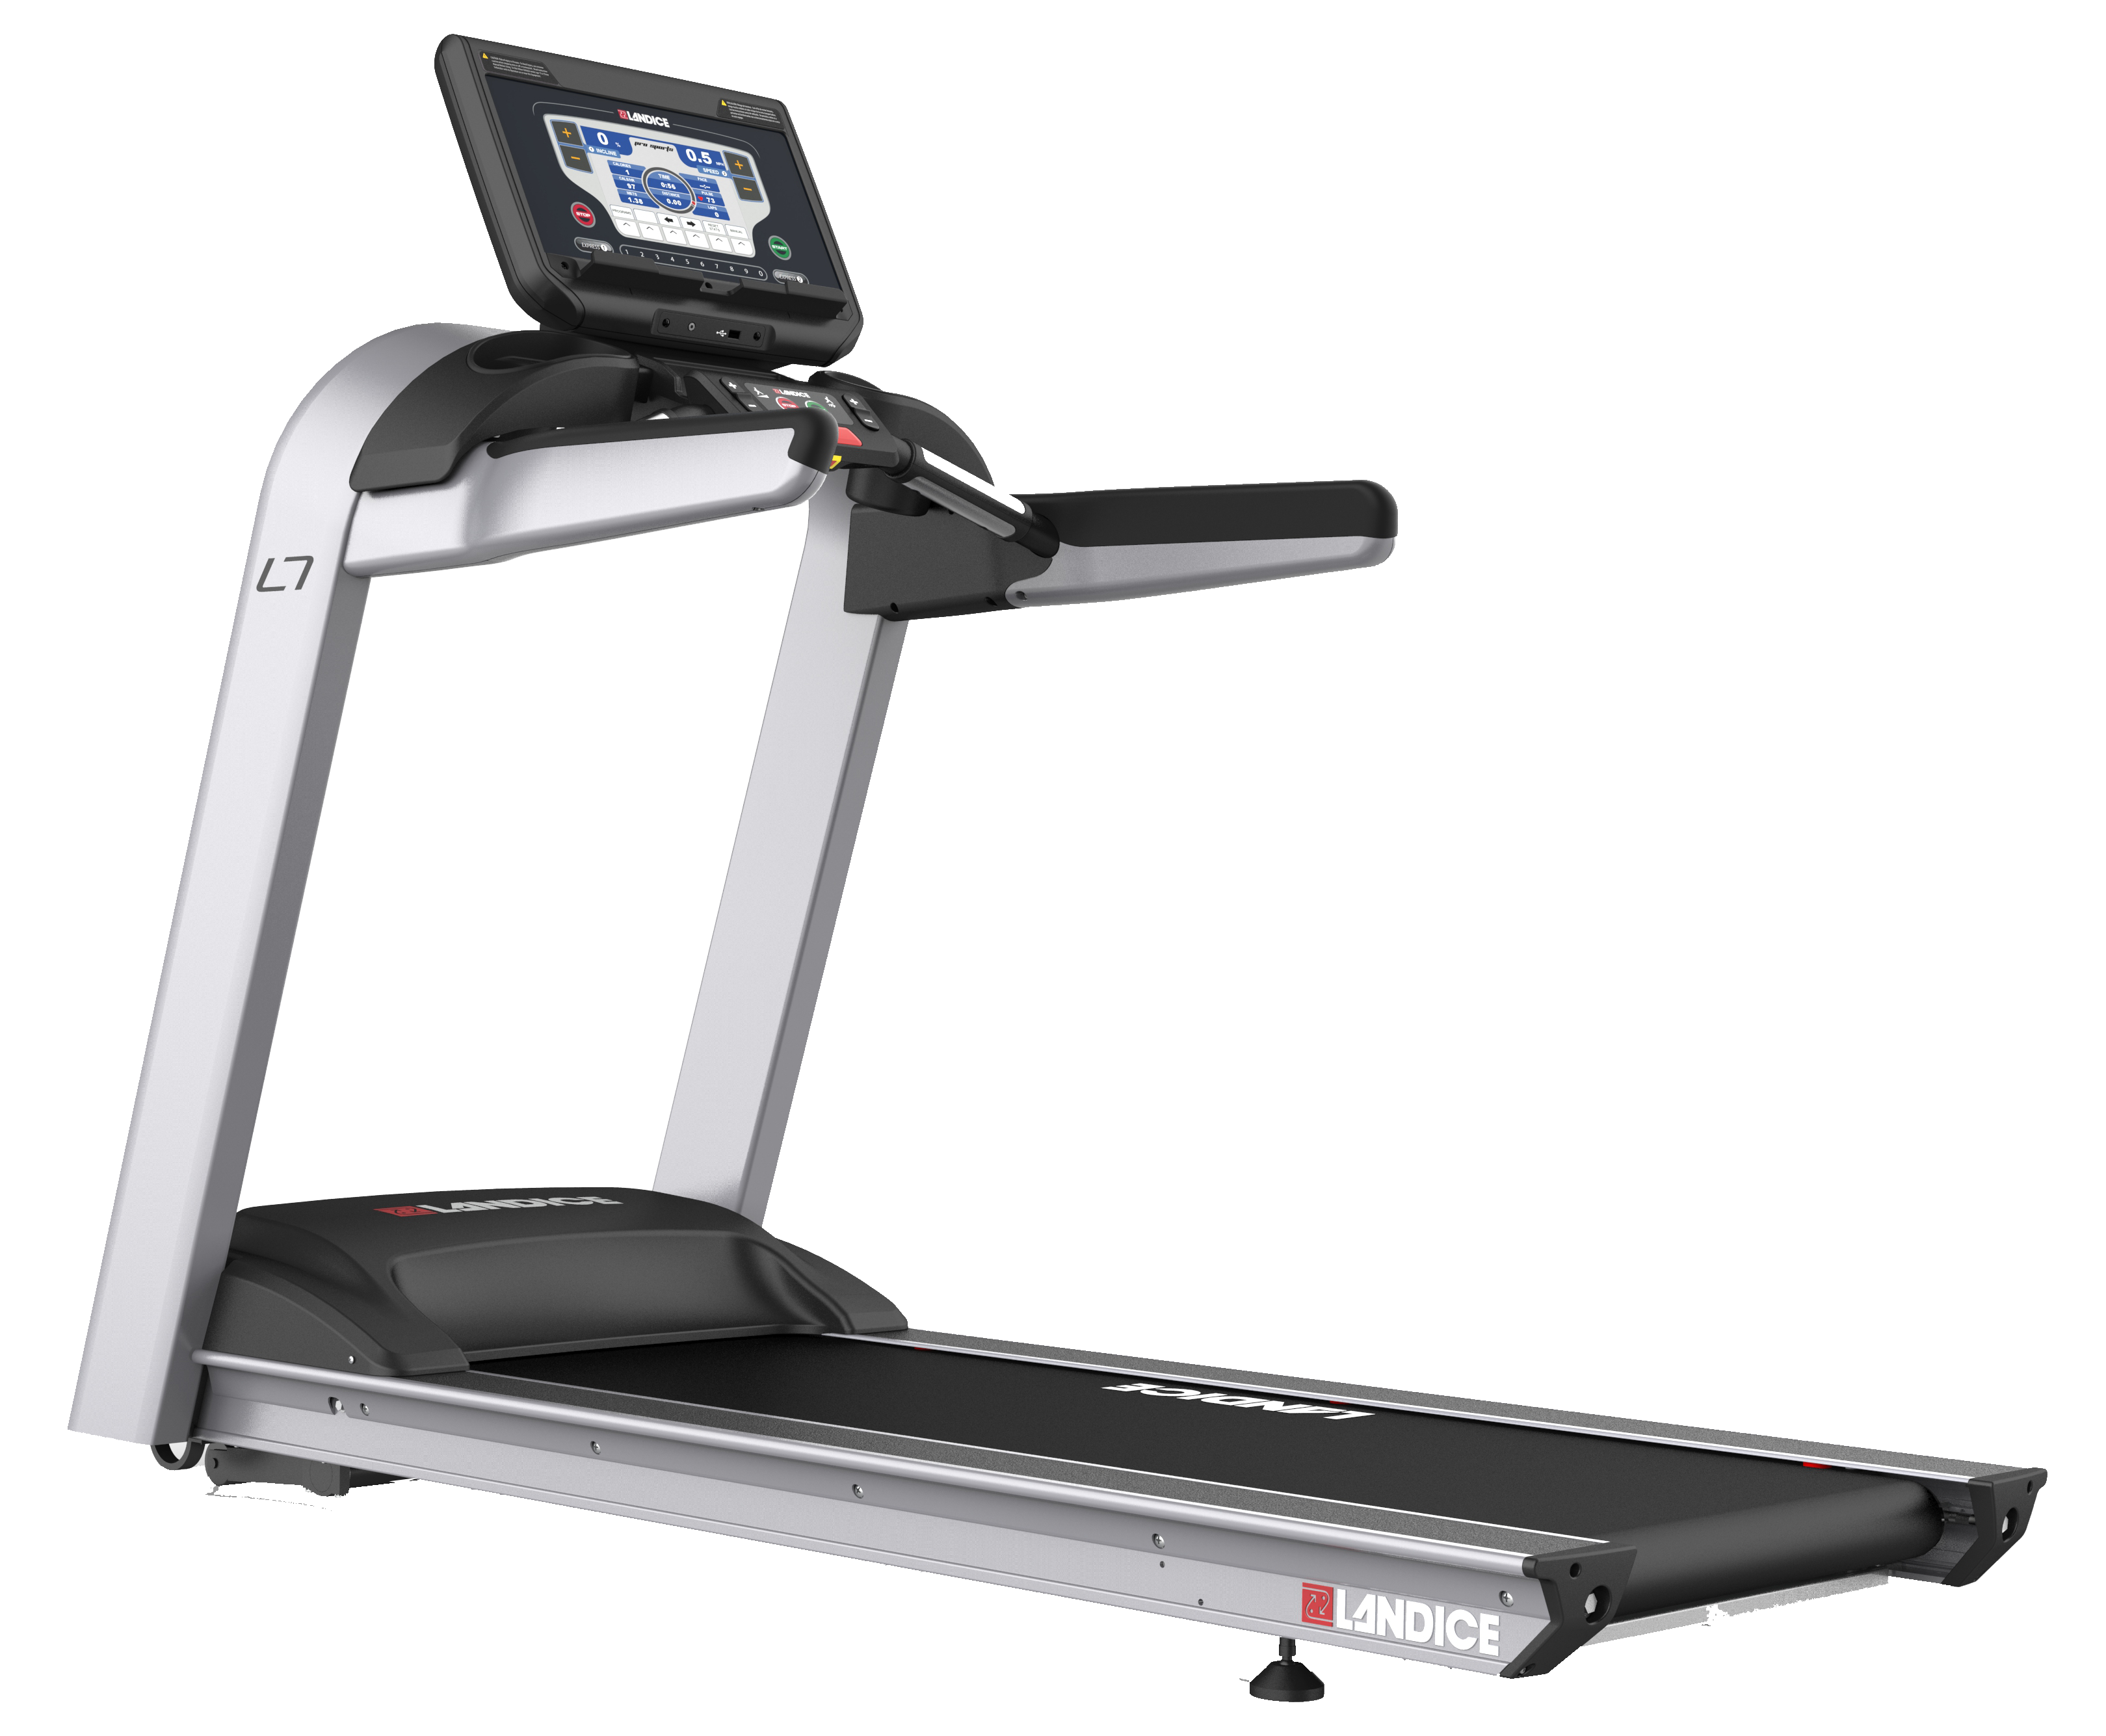 Landice L7-90 CLUB Full Commercial Treadmill